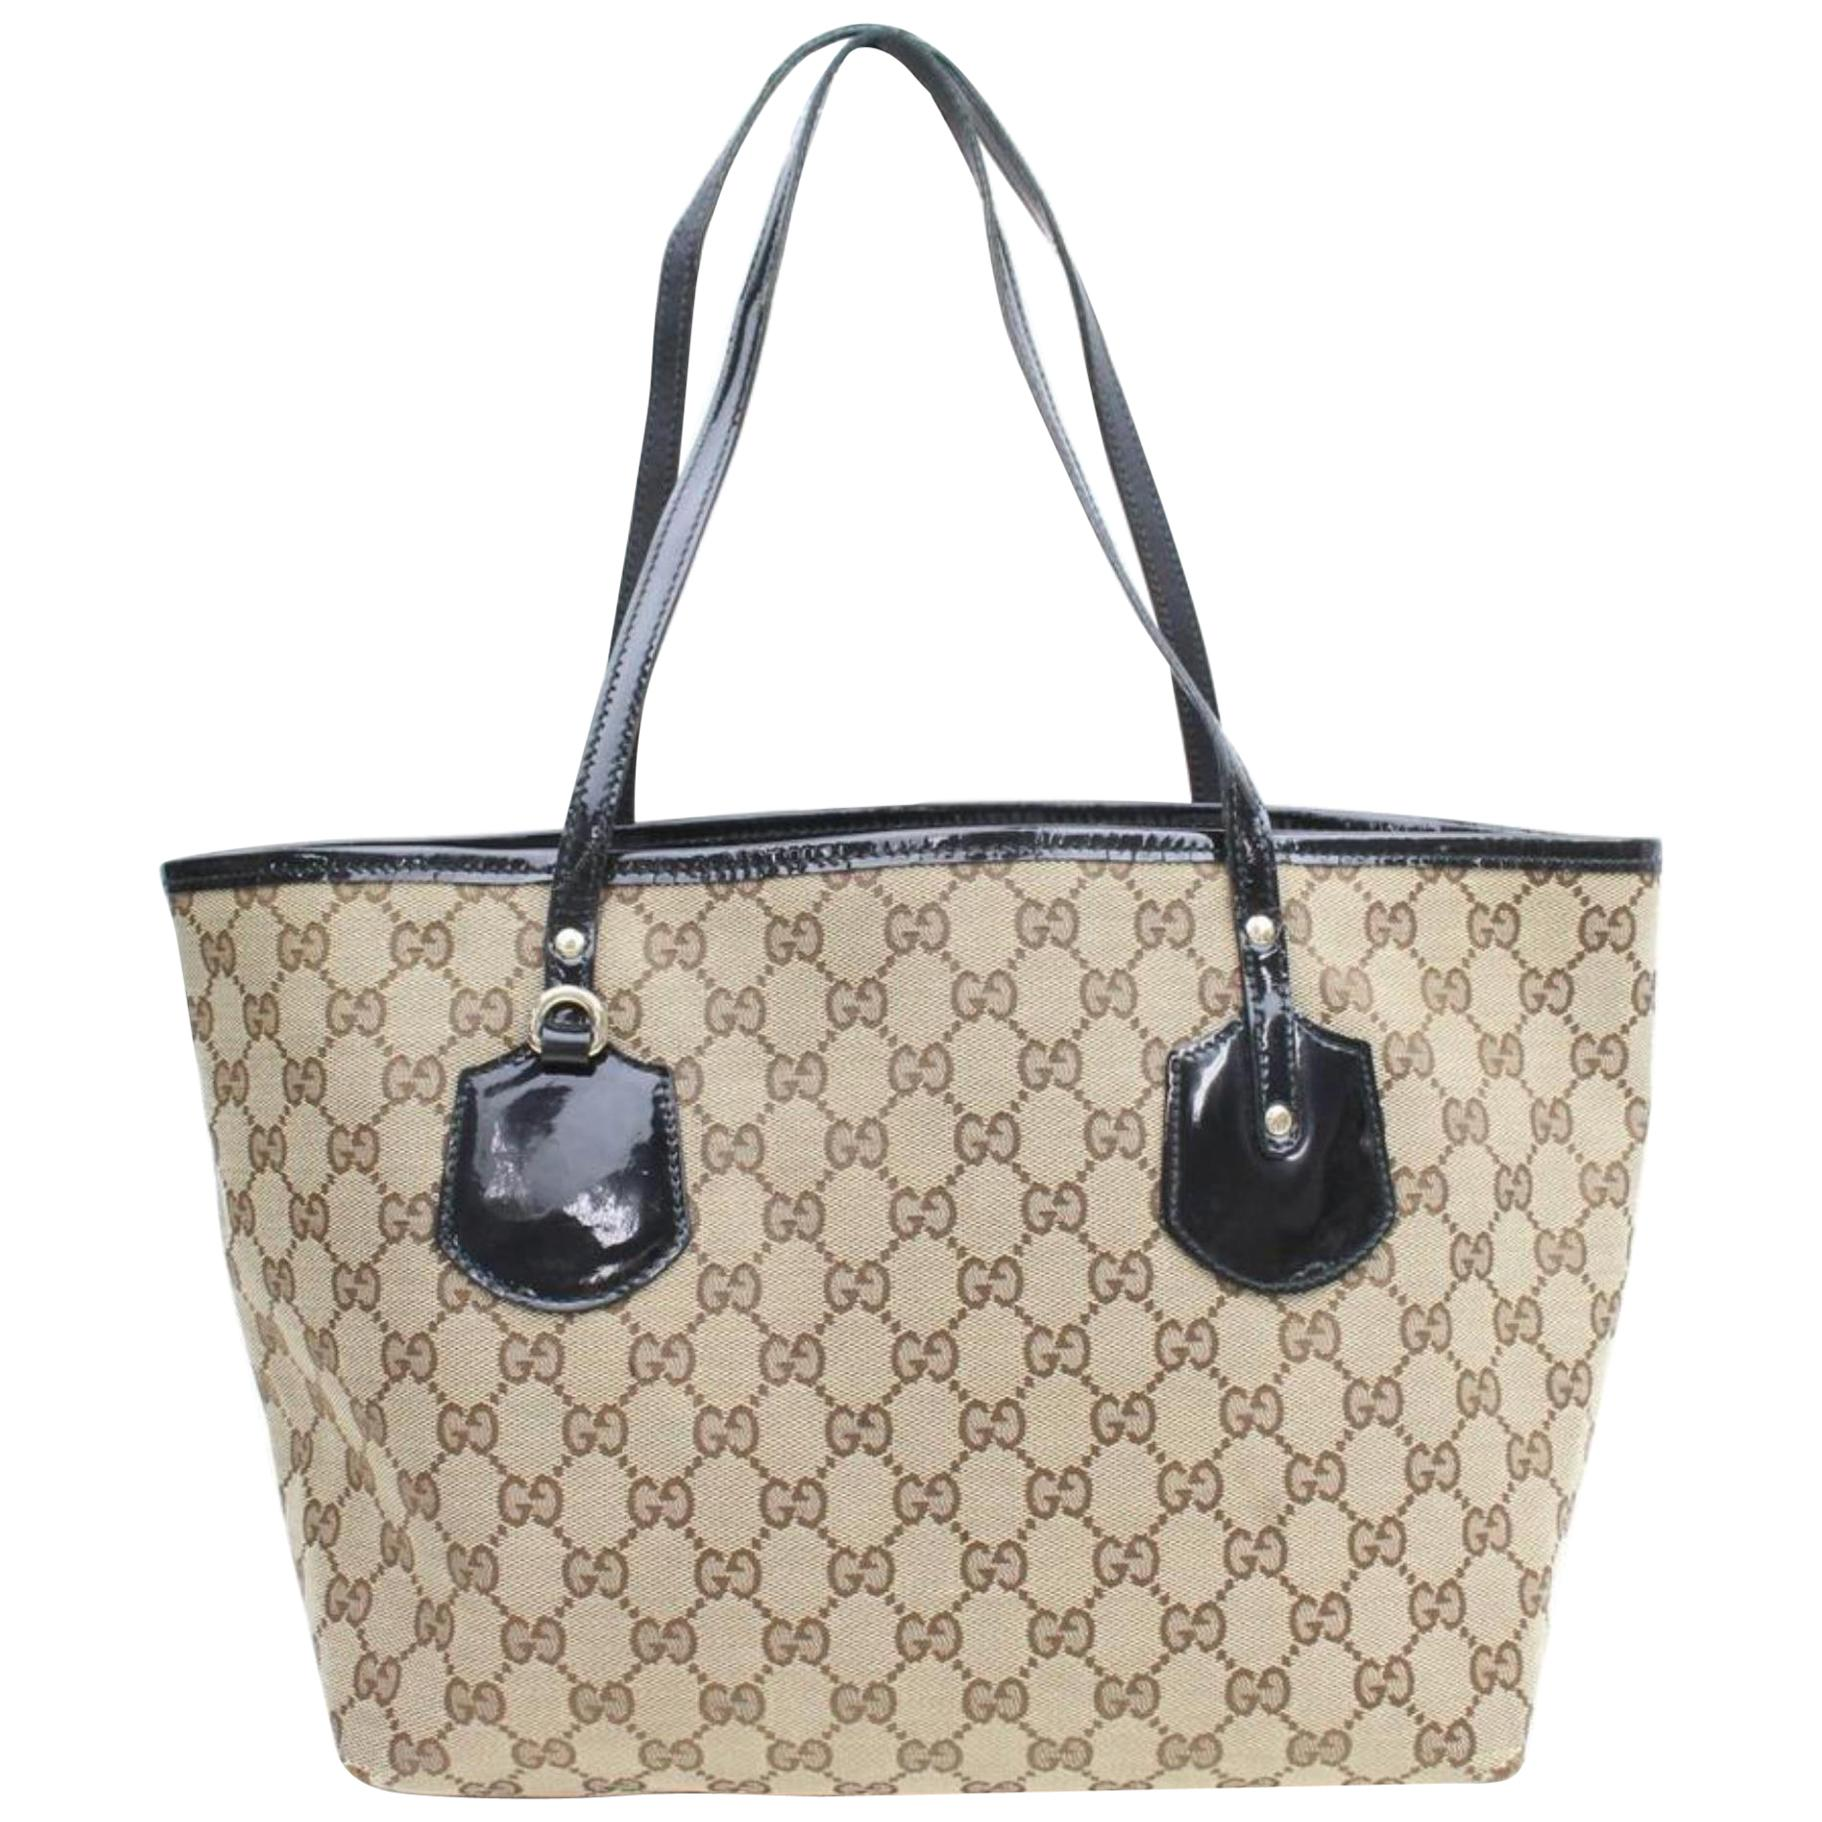 de11b33b9834 Vintage Gucci: Clothing, Bags & More - 3,944 For Sale at 1stdibs - Page 6